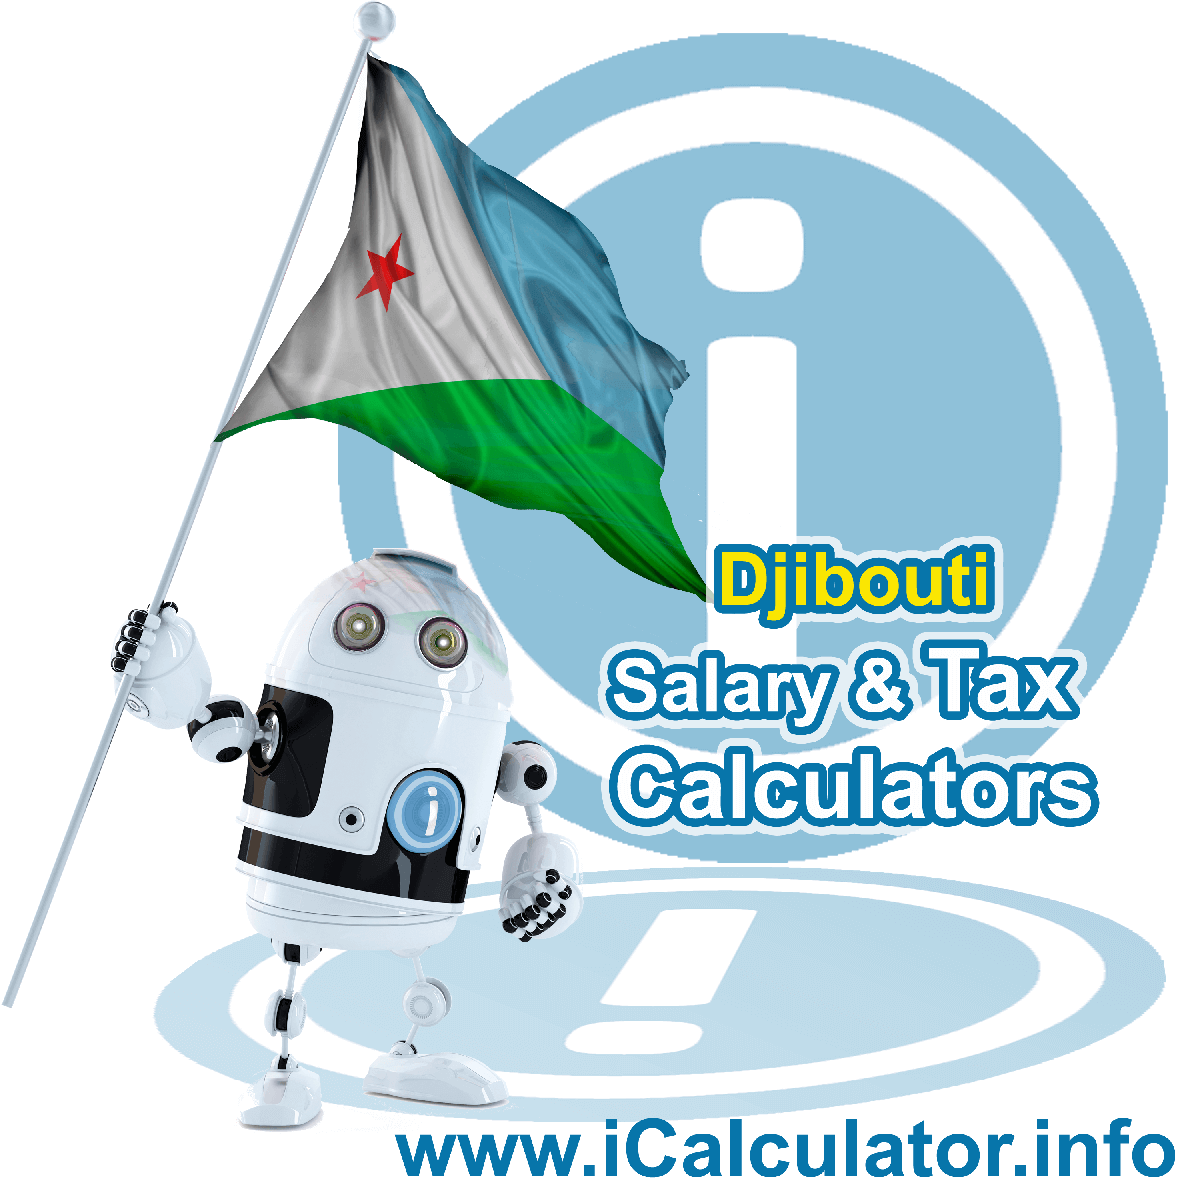 Djibouti Wage Calculator. This image shows the Djibouti flag and information relating to the tax formula for the Djibouti Tax Calculator